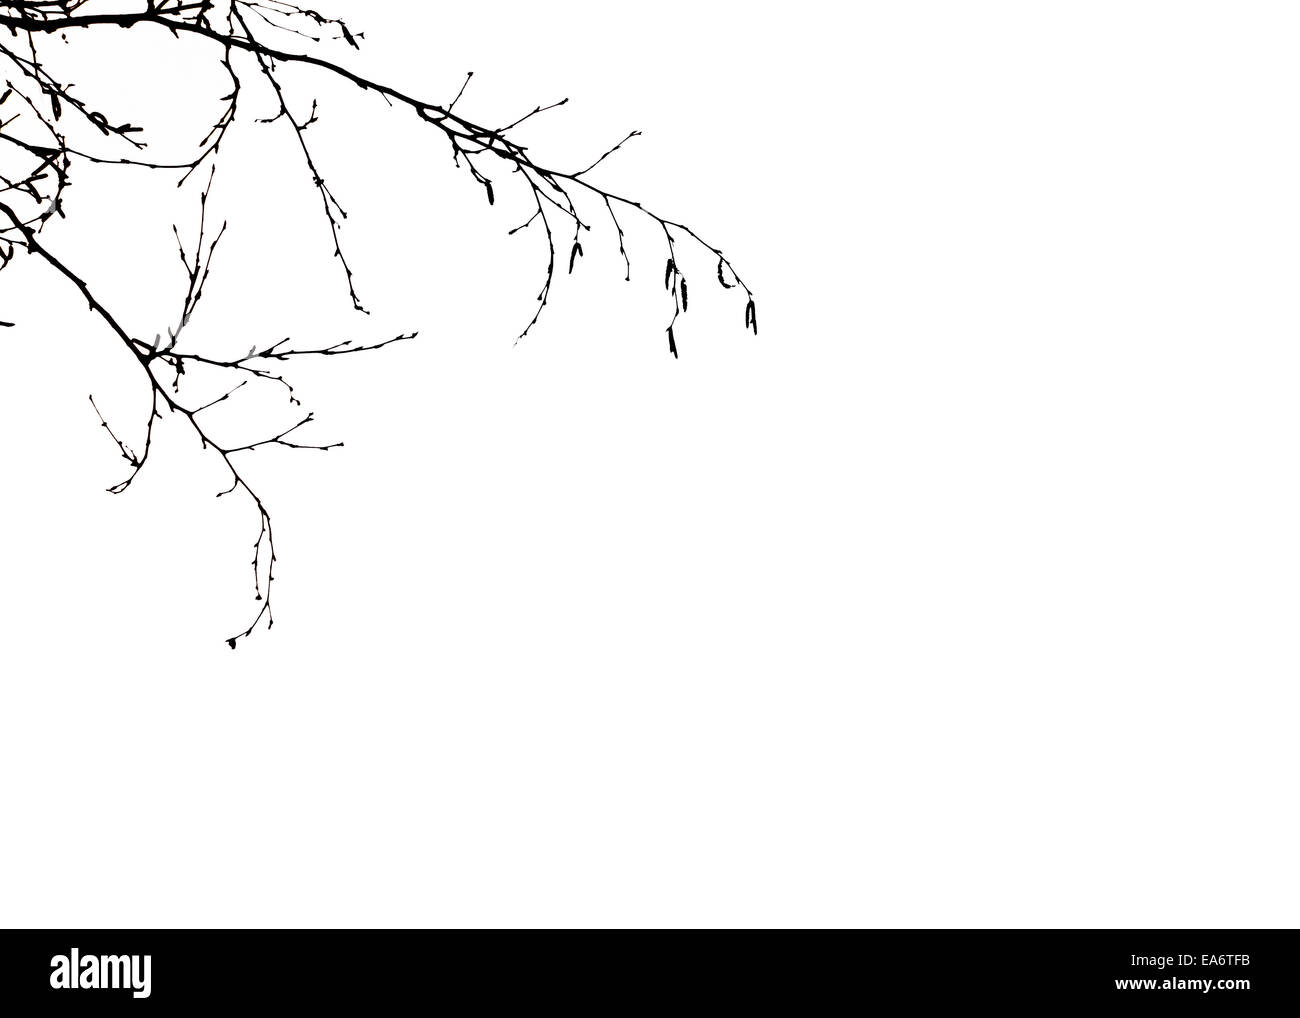 Silhouetted tree branches. - Stock Image